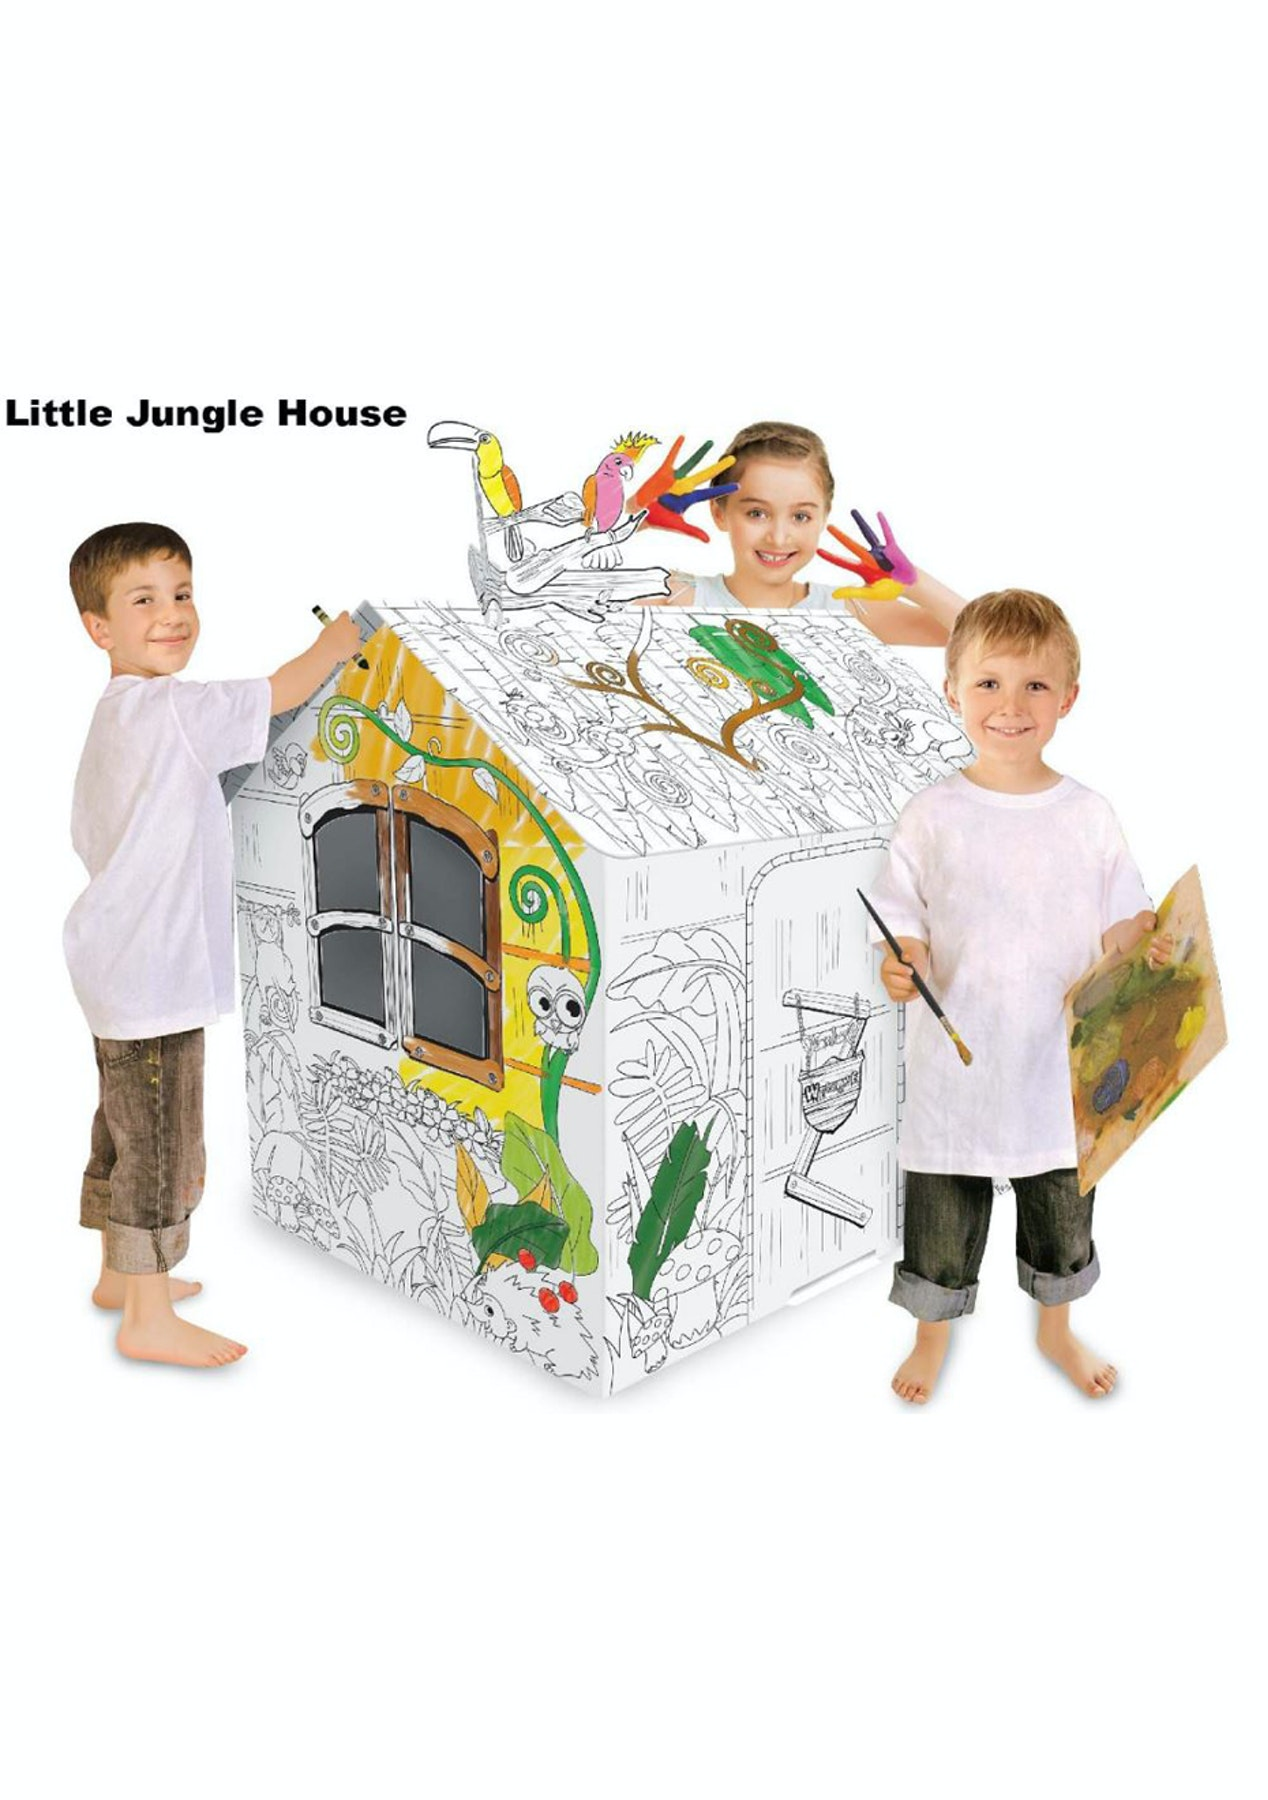 Coloring Cardboard Playhouse - Little Jungle House